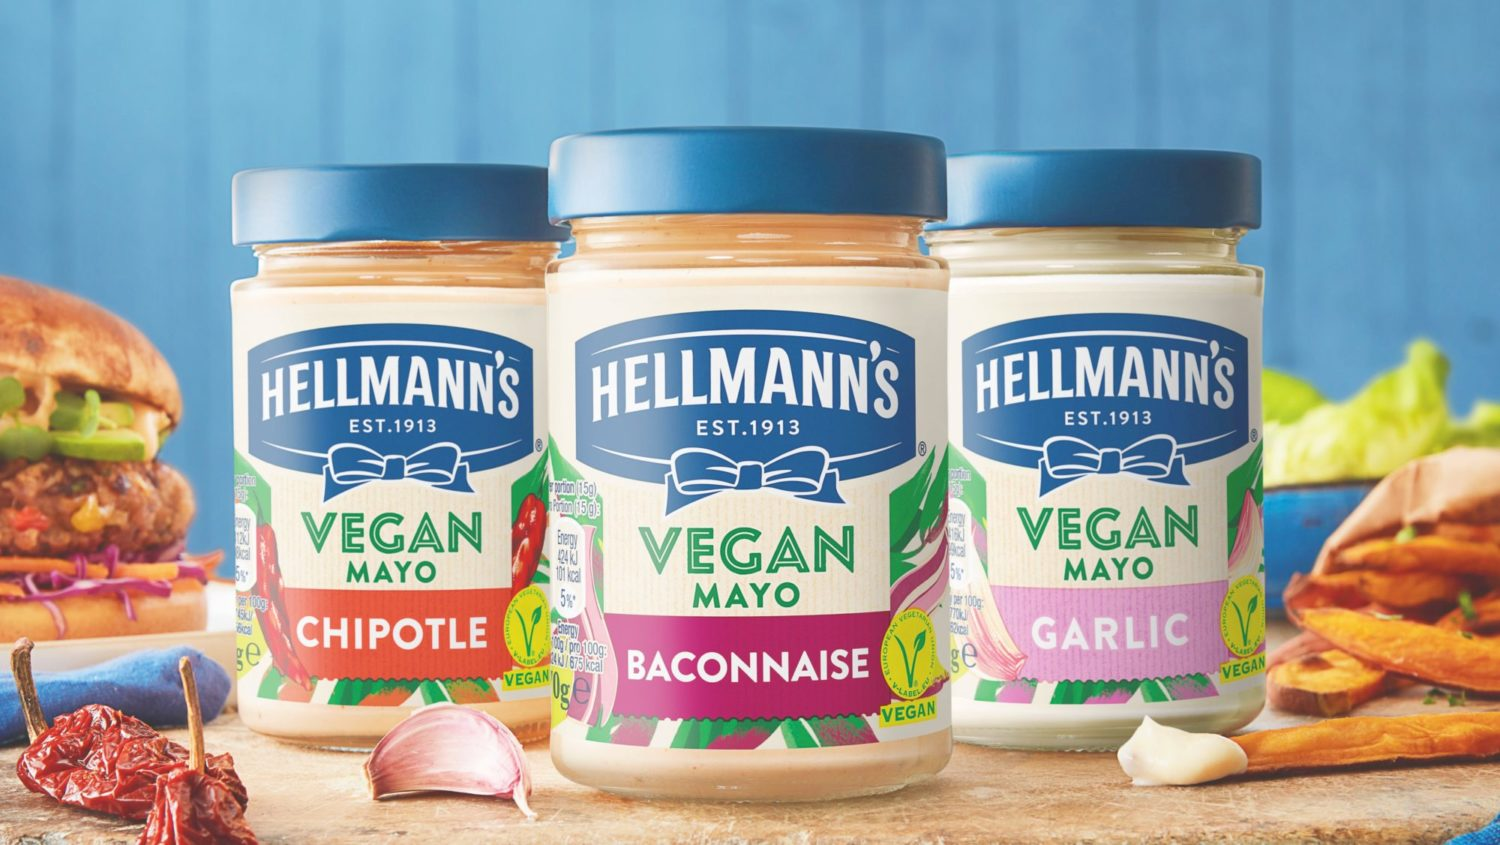 Hellmann's Just Launched Vegan Baconnaise in the UK